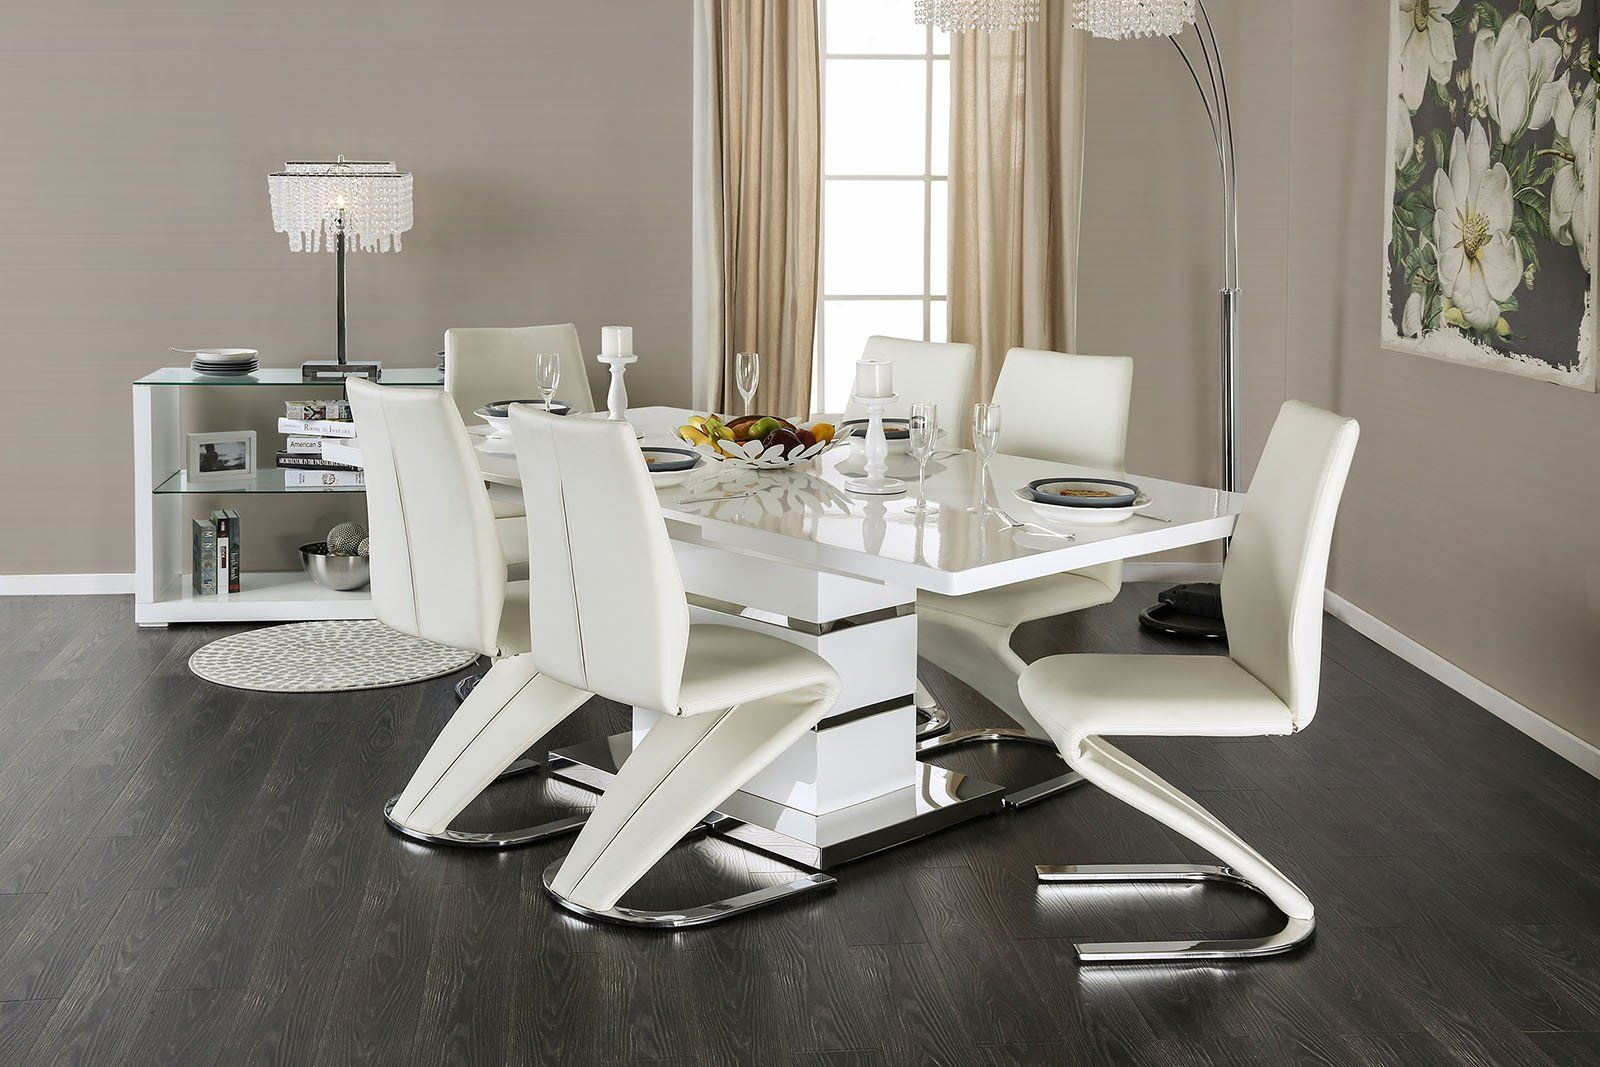 Midvale Contemporary Dining Table Set  Contemporary Dining Table Endearing White Contemporary Dining Room Sets Design Decoration